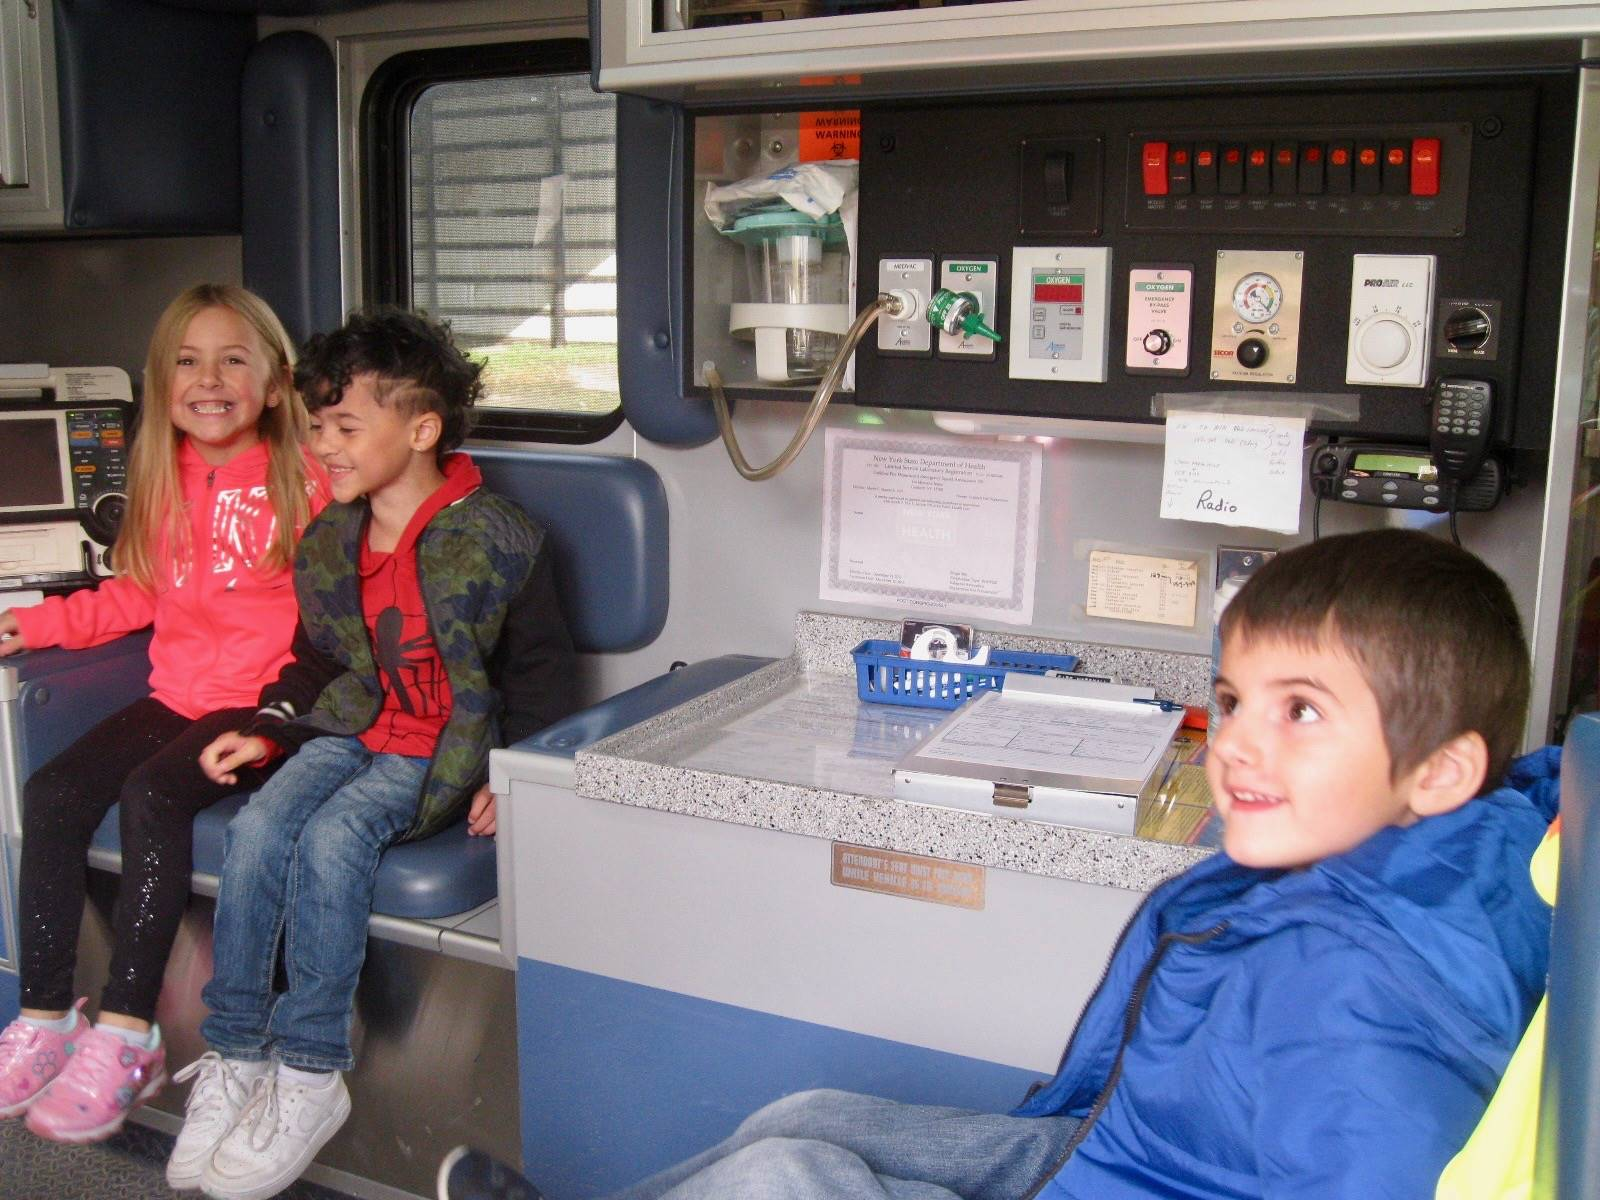 3 students sit in an ambulance